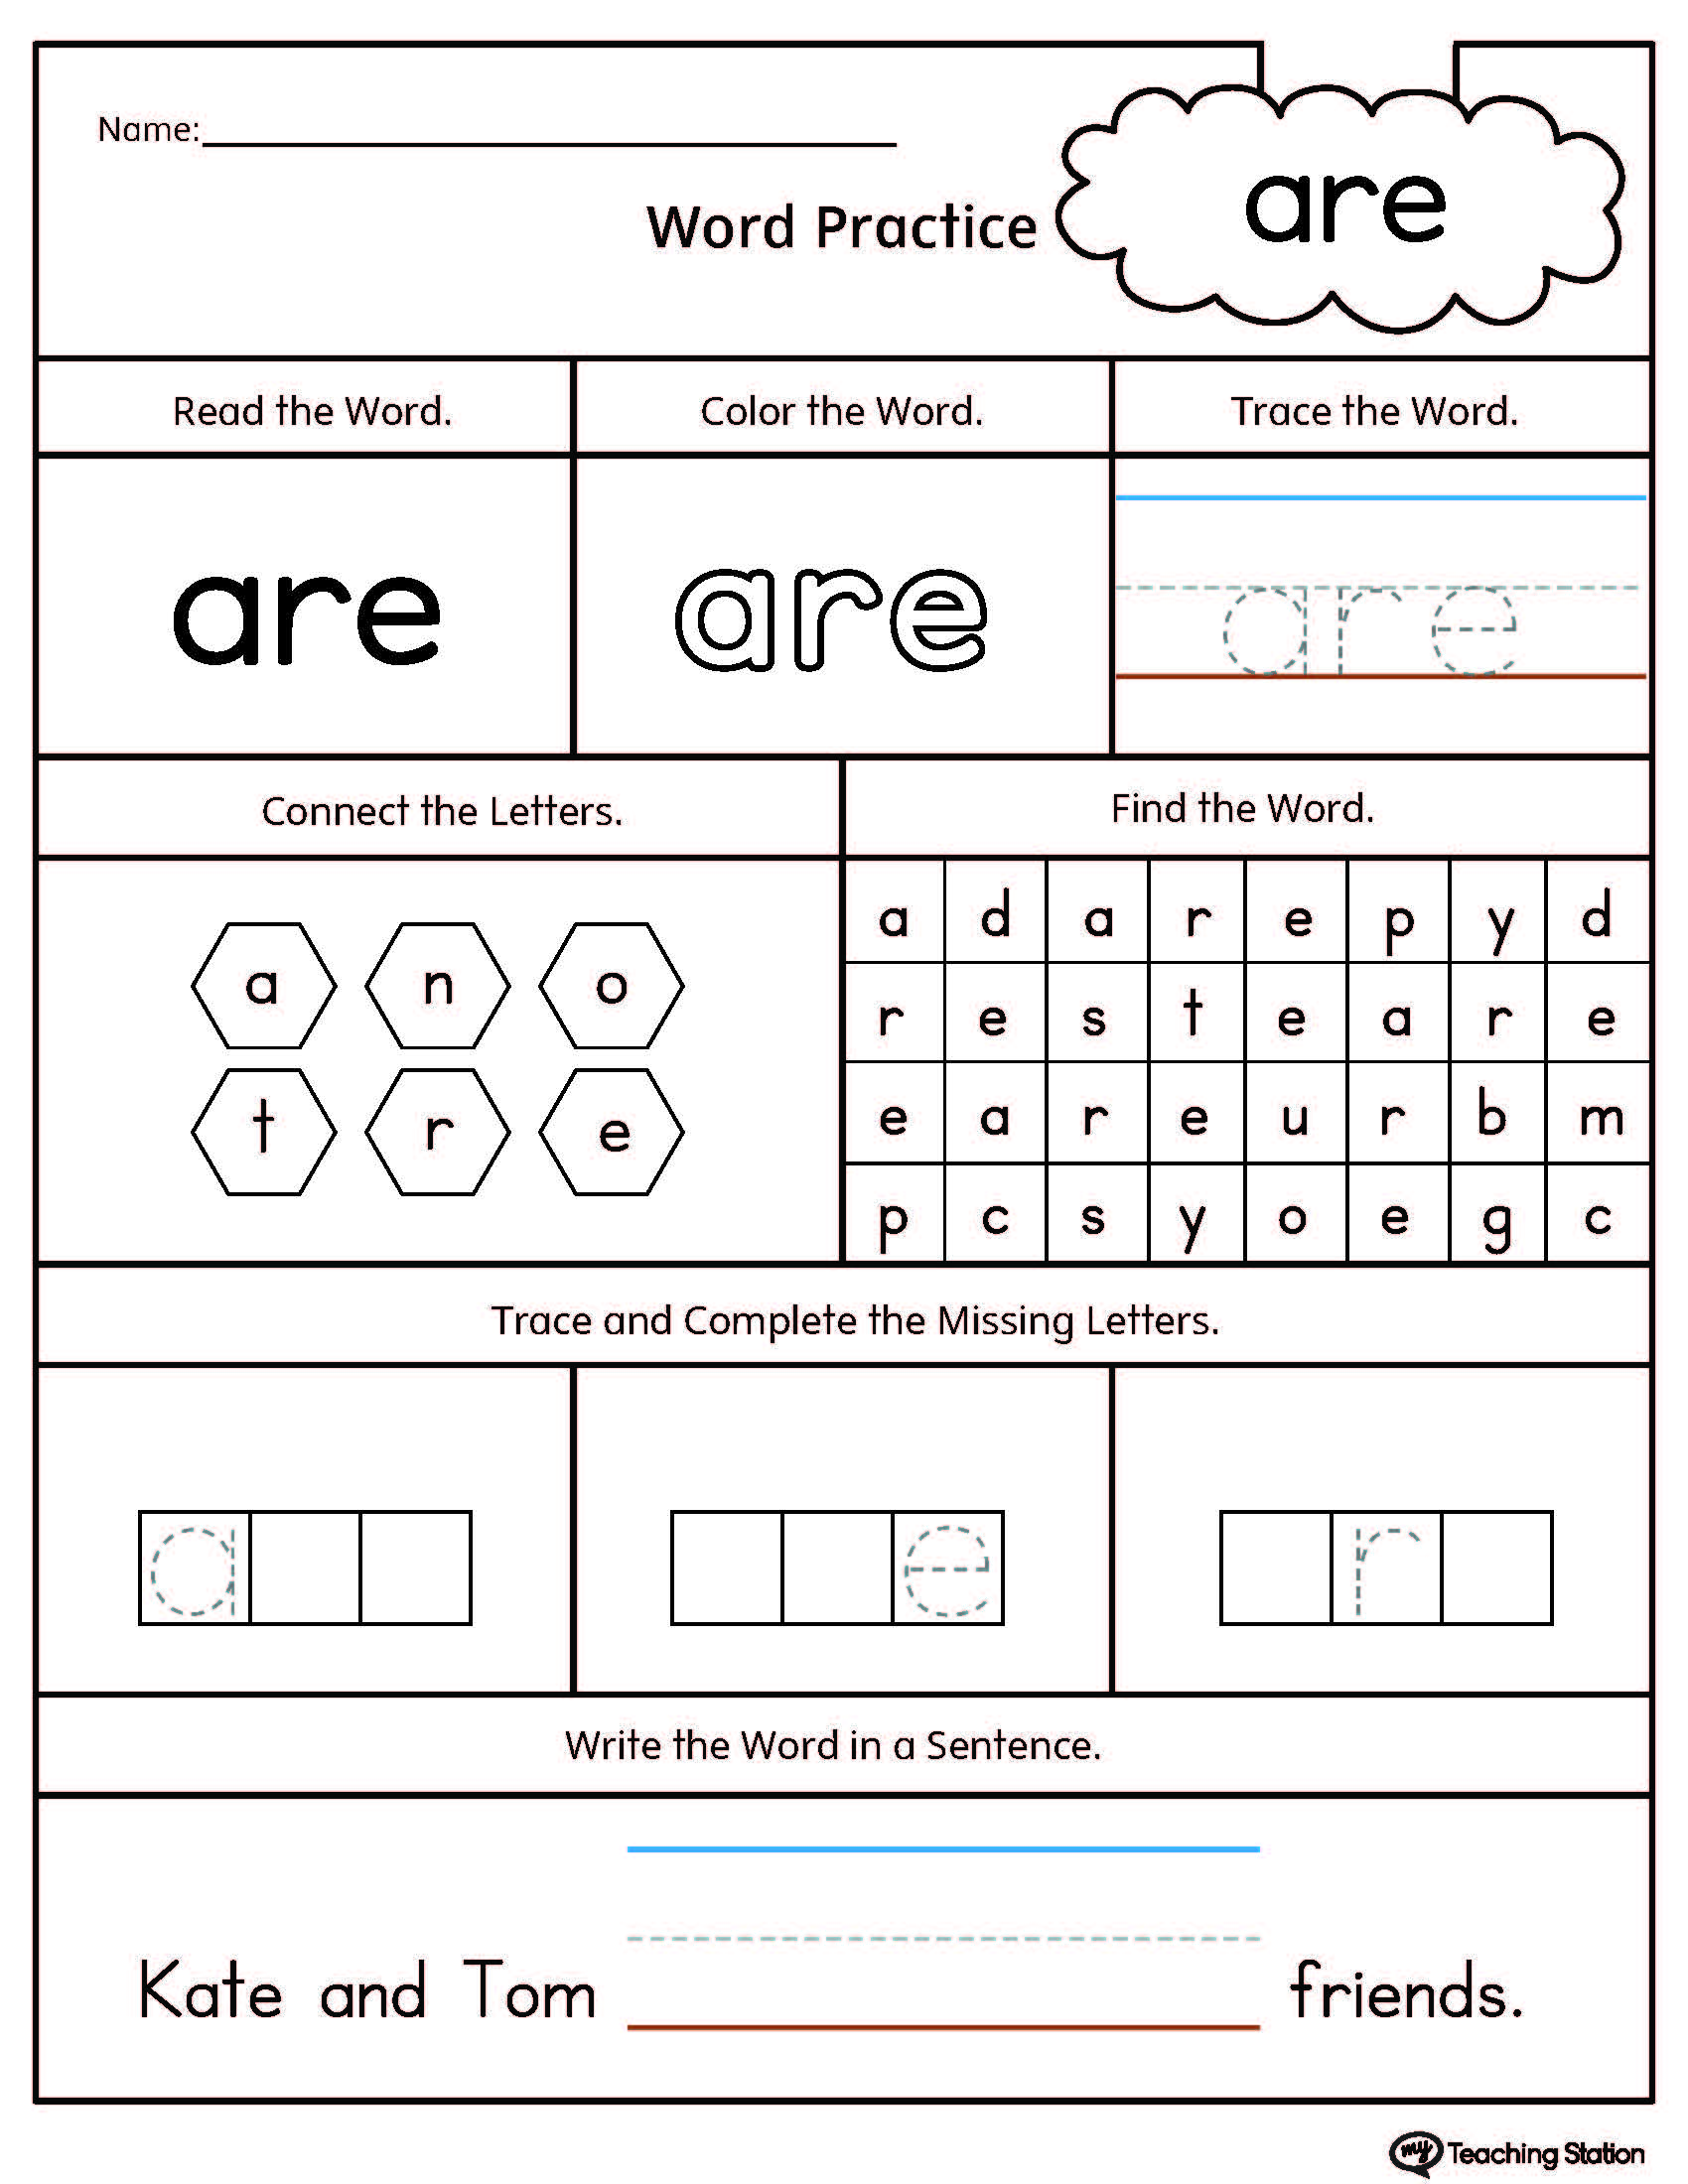 High Frequency Word Are Printable Worksheet